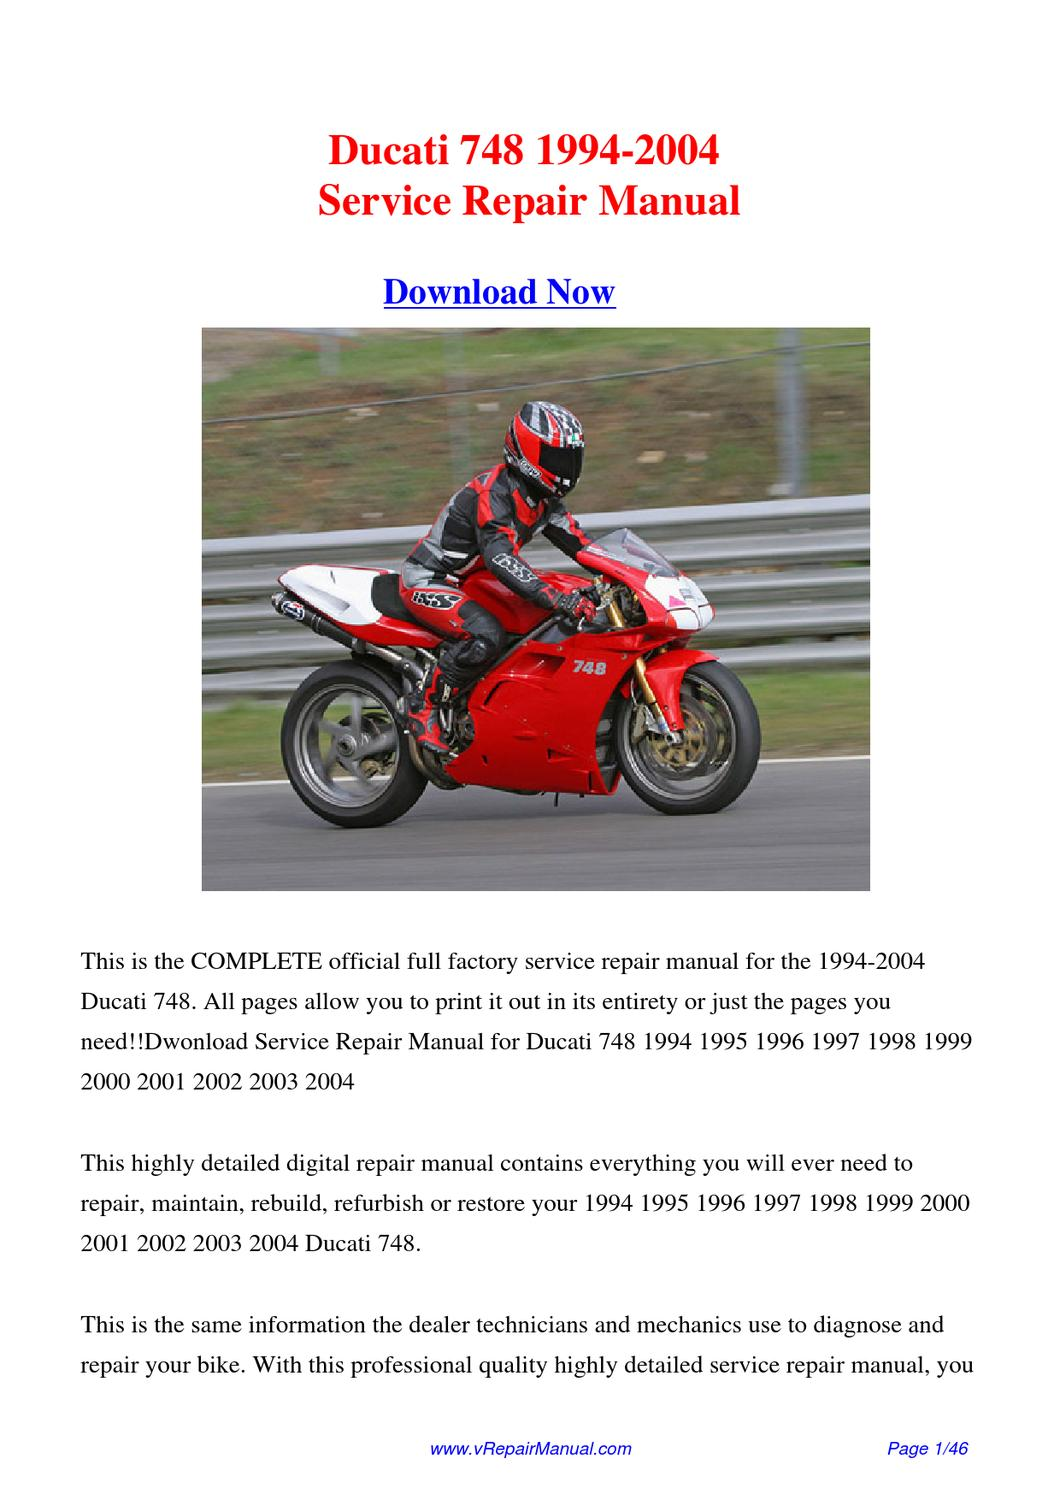 Ducati 748 User Manual Auto Electrical Wiring Diagram 1999 996 1994 2004 Workshop By Huang Kung